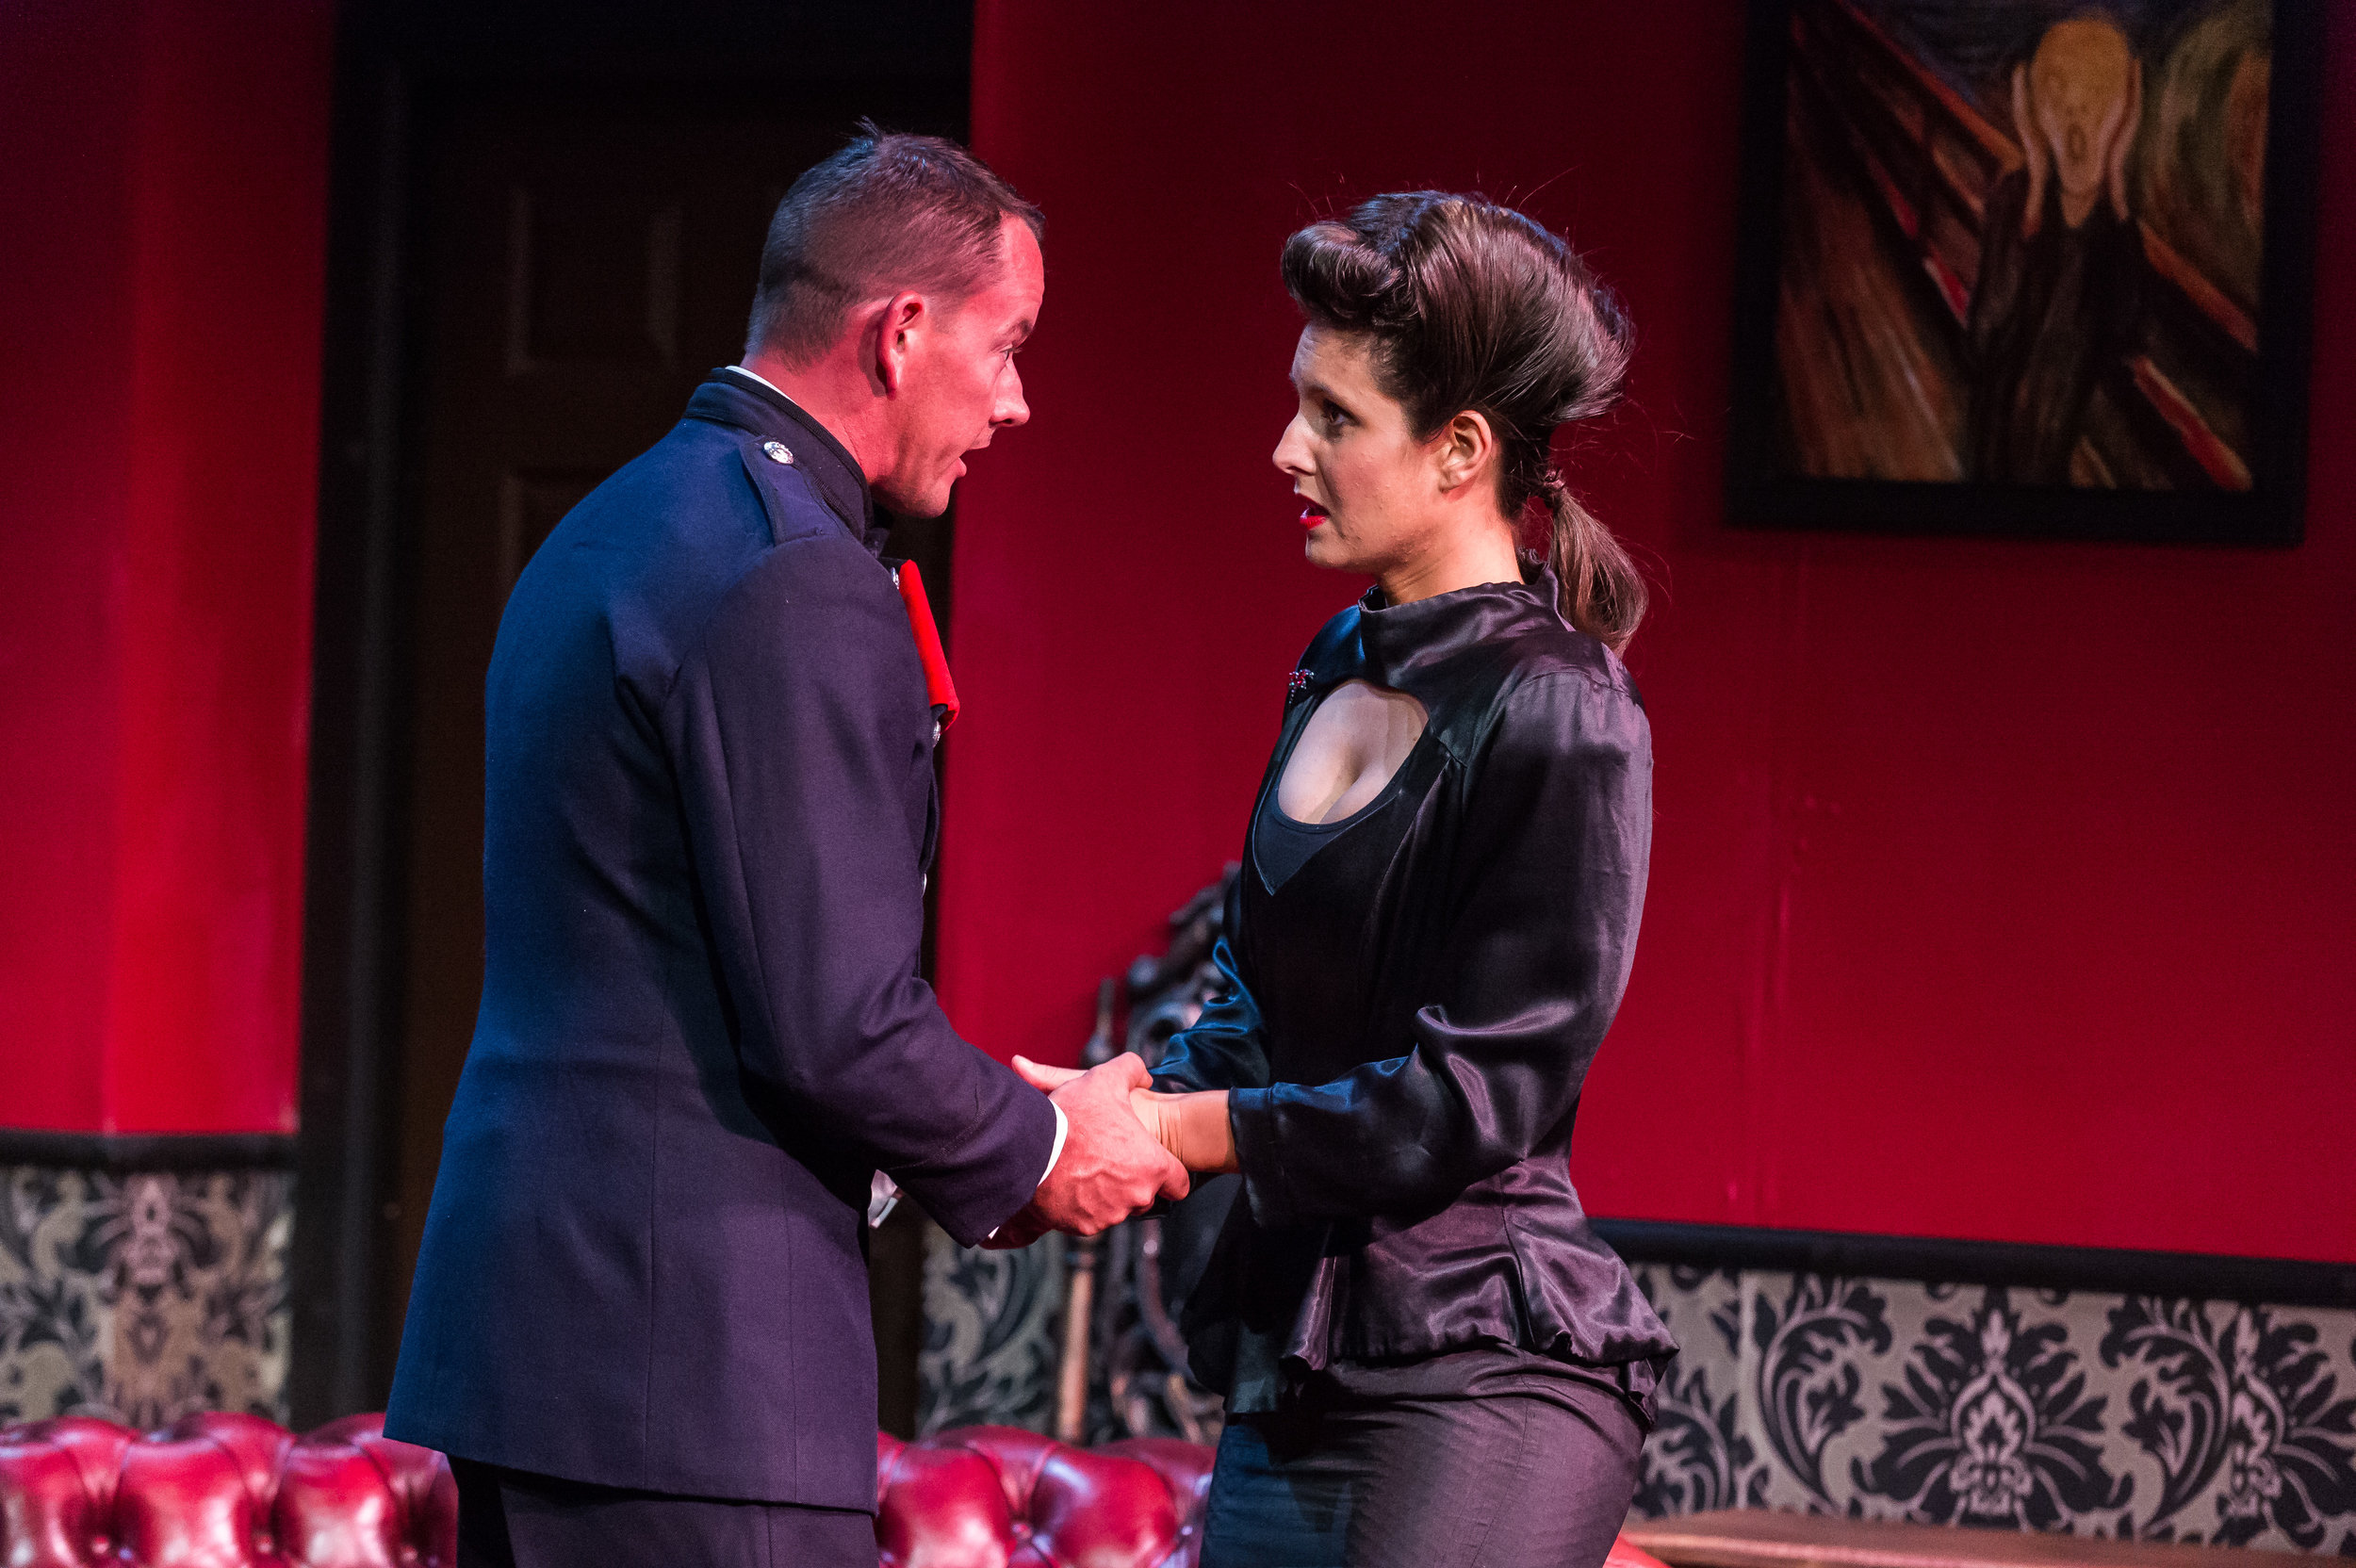 Wanted - One Body! - 19th November, 2017                                  Written by British actor and playwright Charles Dyer,Wanted – One Body!has been staged constantly since its first production in 1961